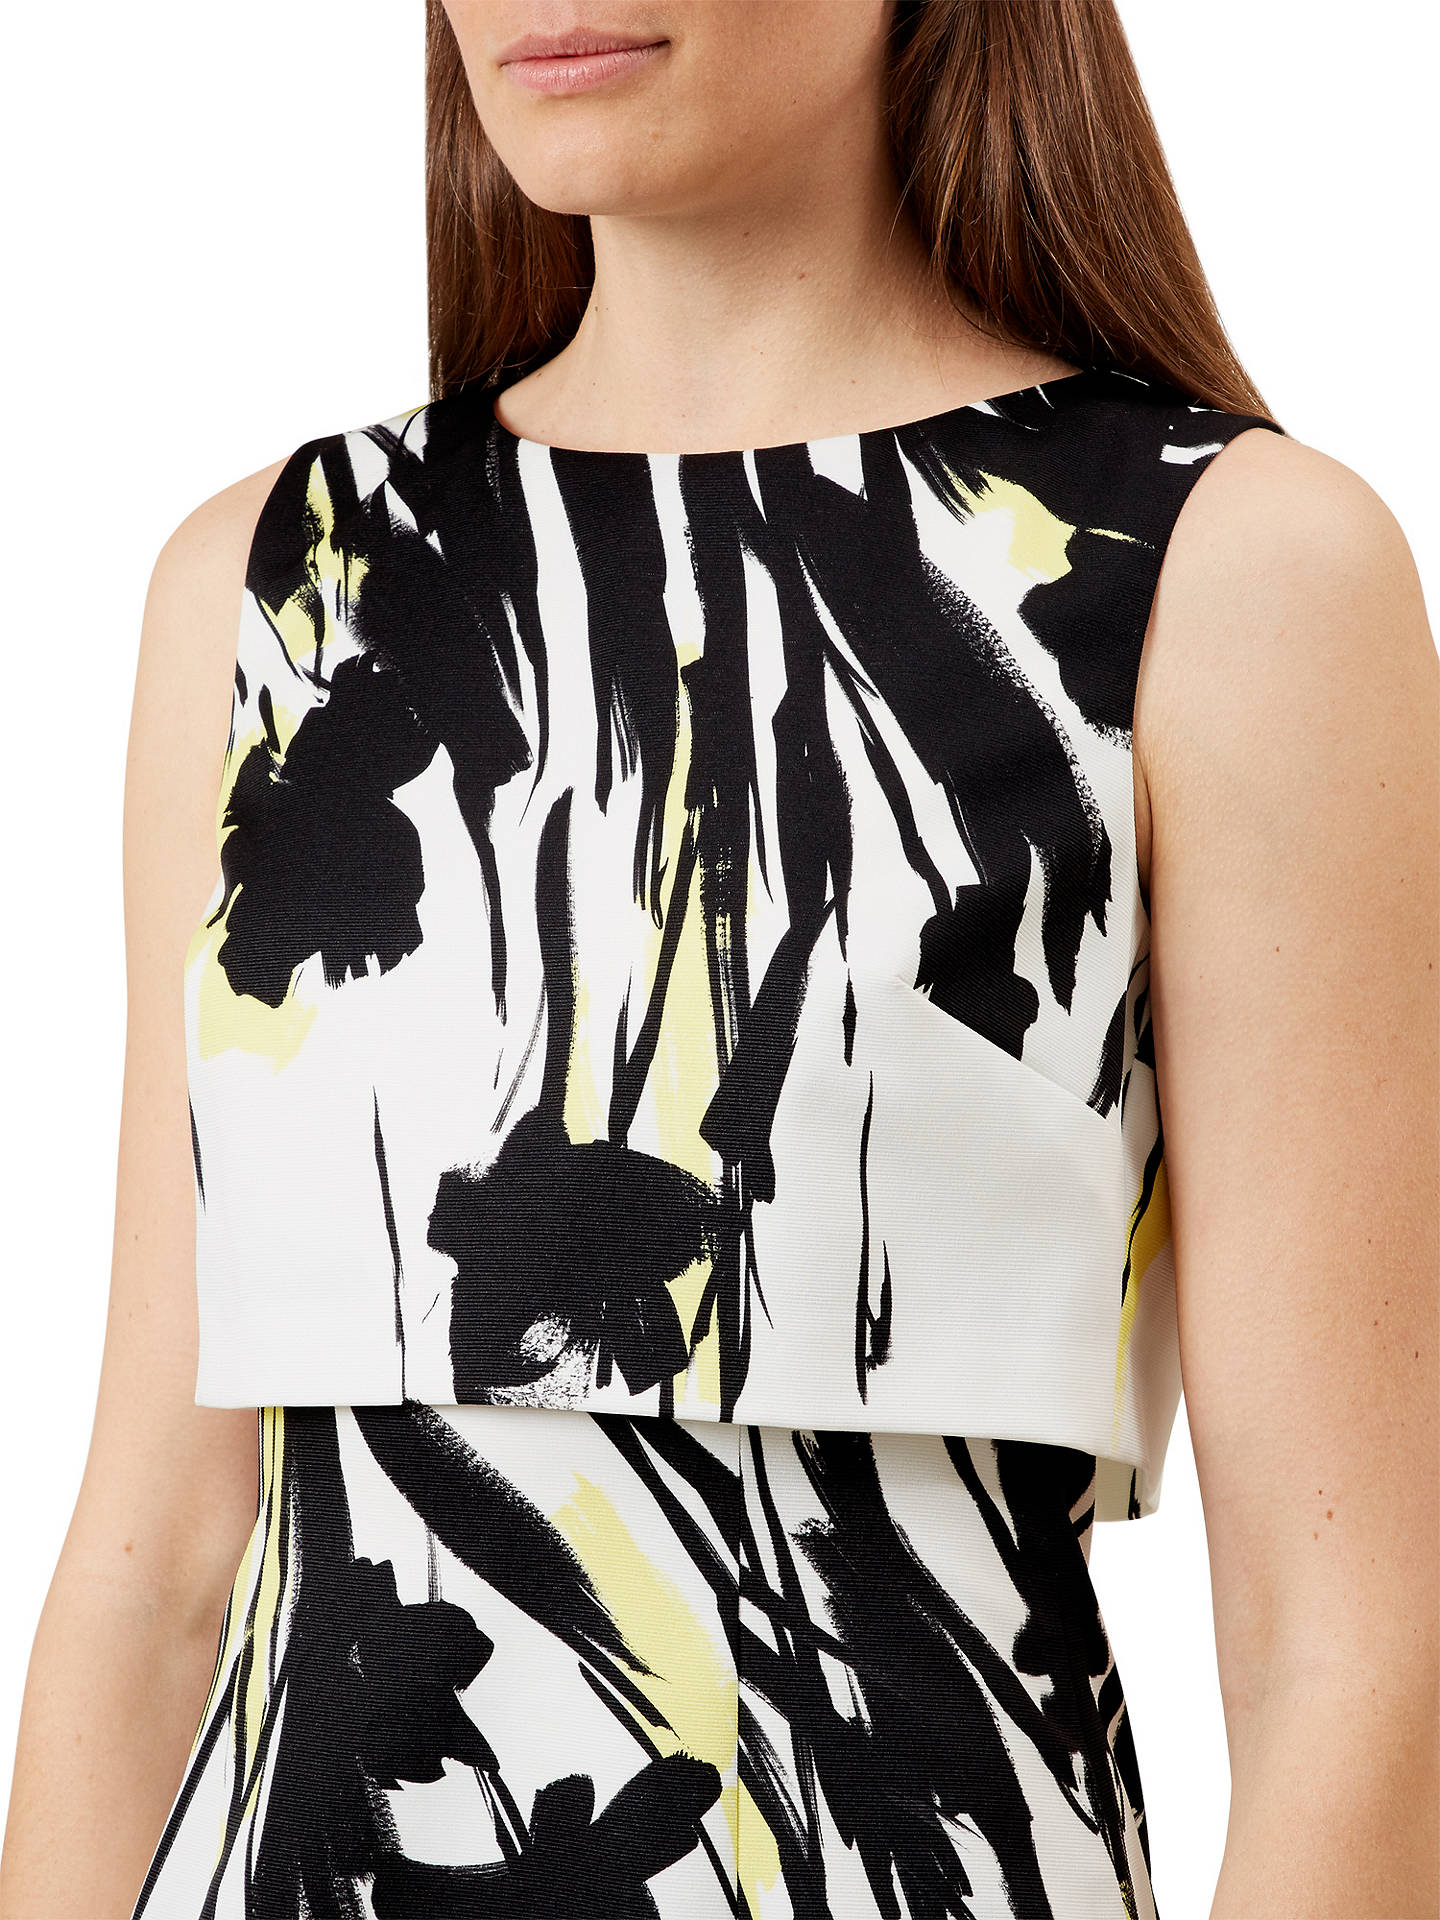 BuyHobbs Bree Dress, Ivory/Multi, 6 Online at johnlewis.com